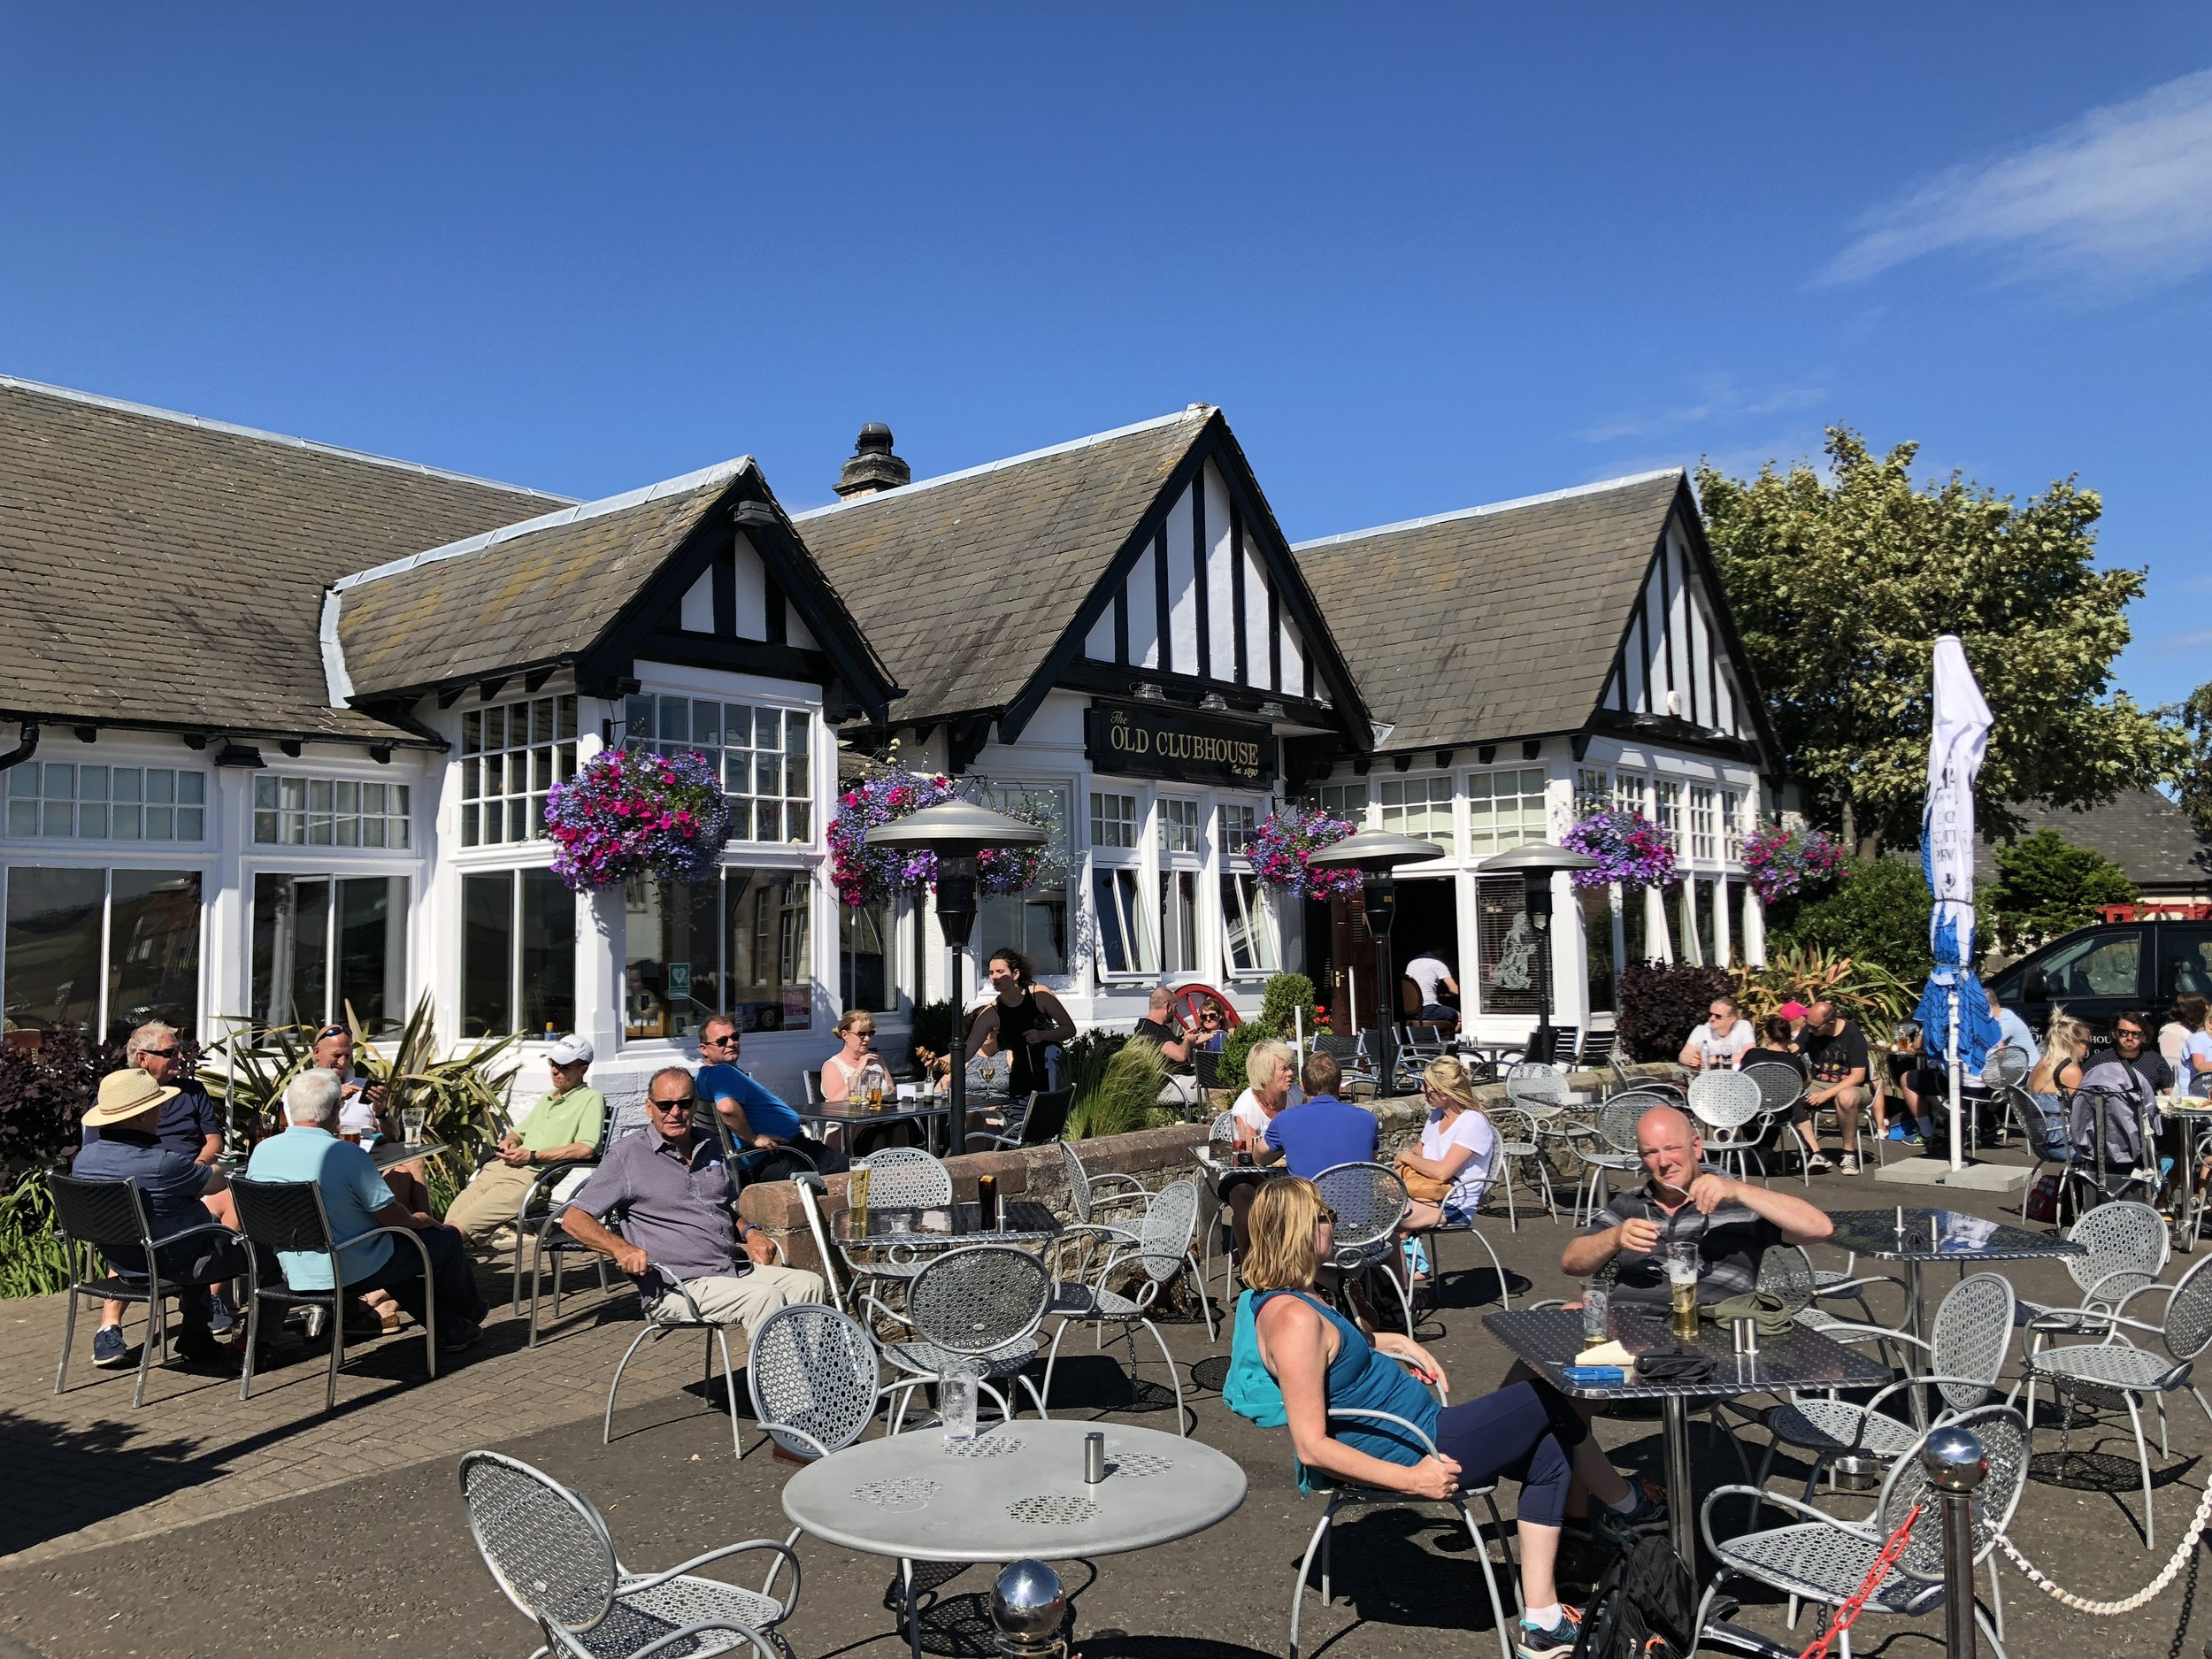 The Old Clubhouse is within 100 yards of Gullane Golf Club and a great spot for a post (or pre) match drink.